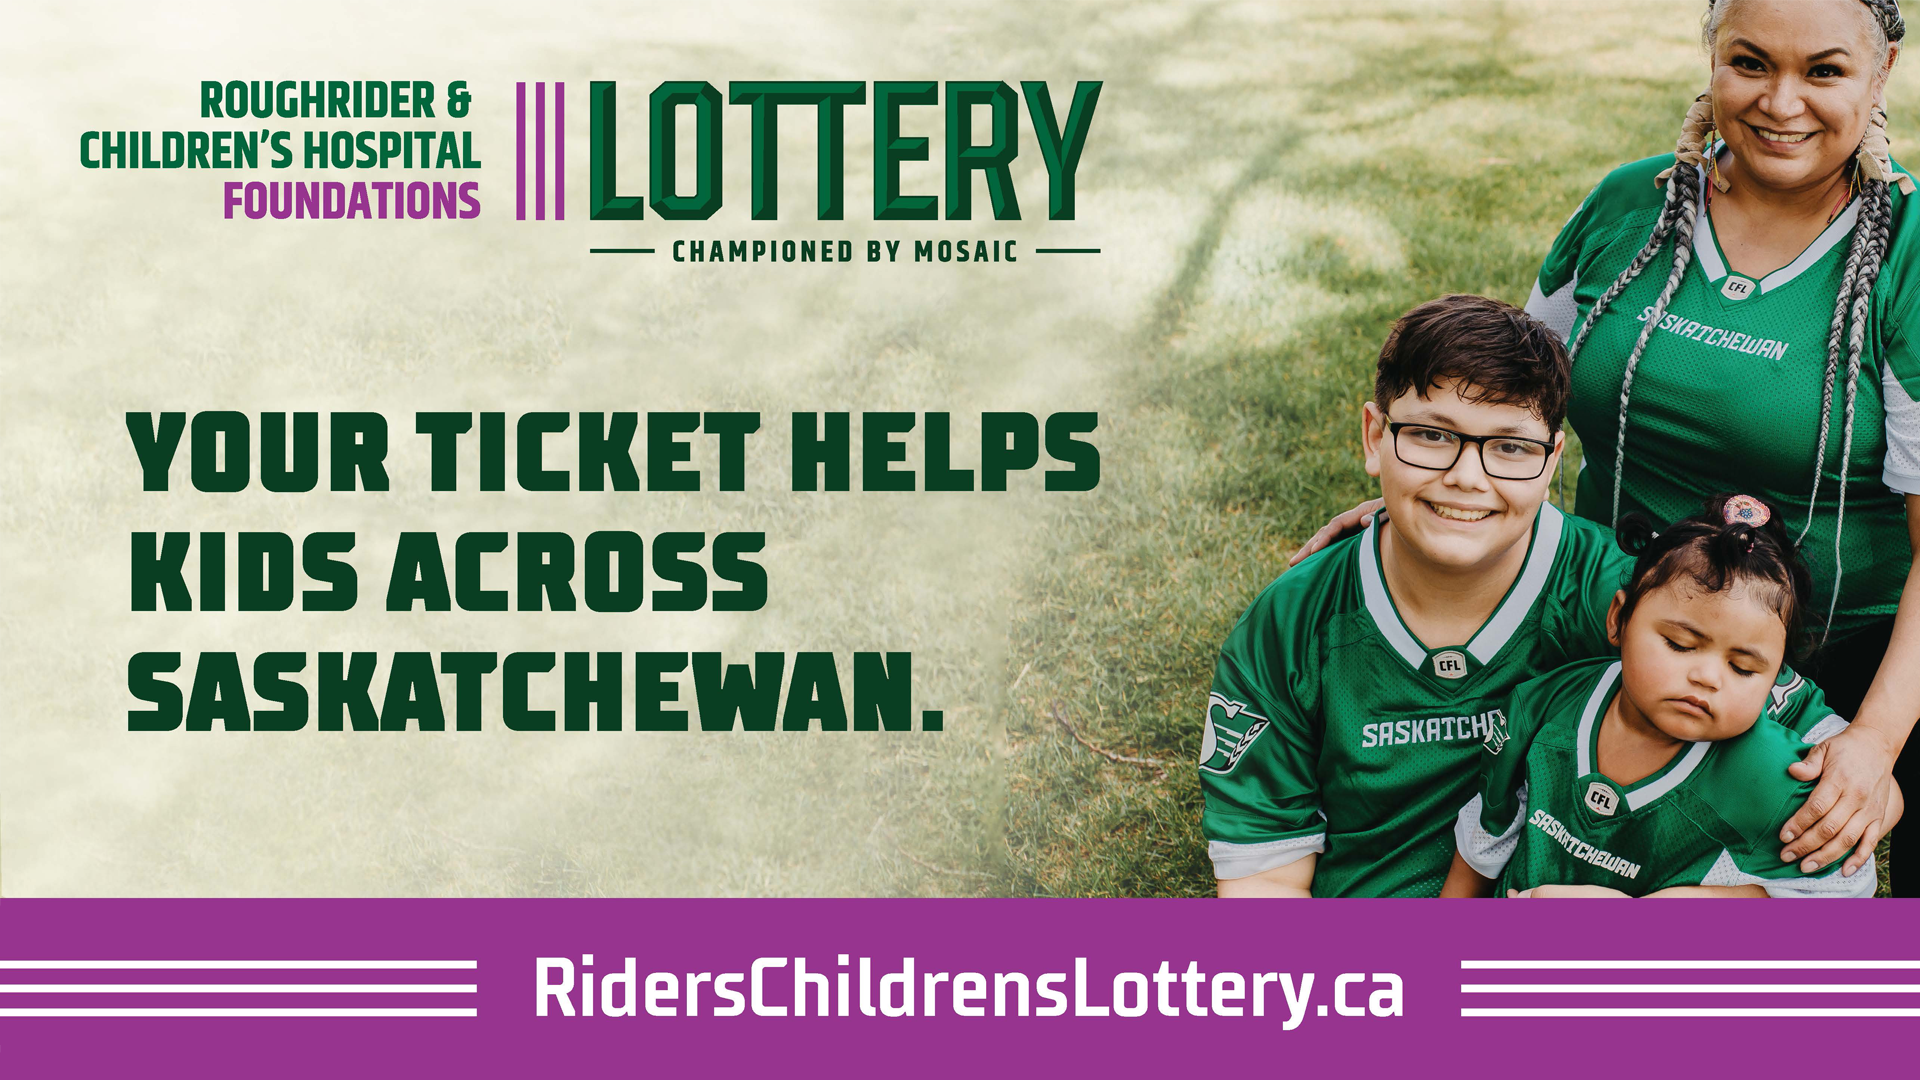 Roughrider & Children's Hospital Foundations Lottery